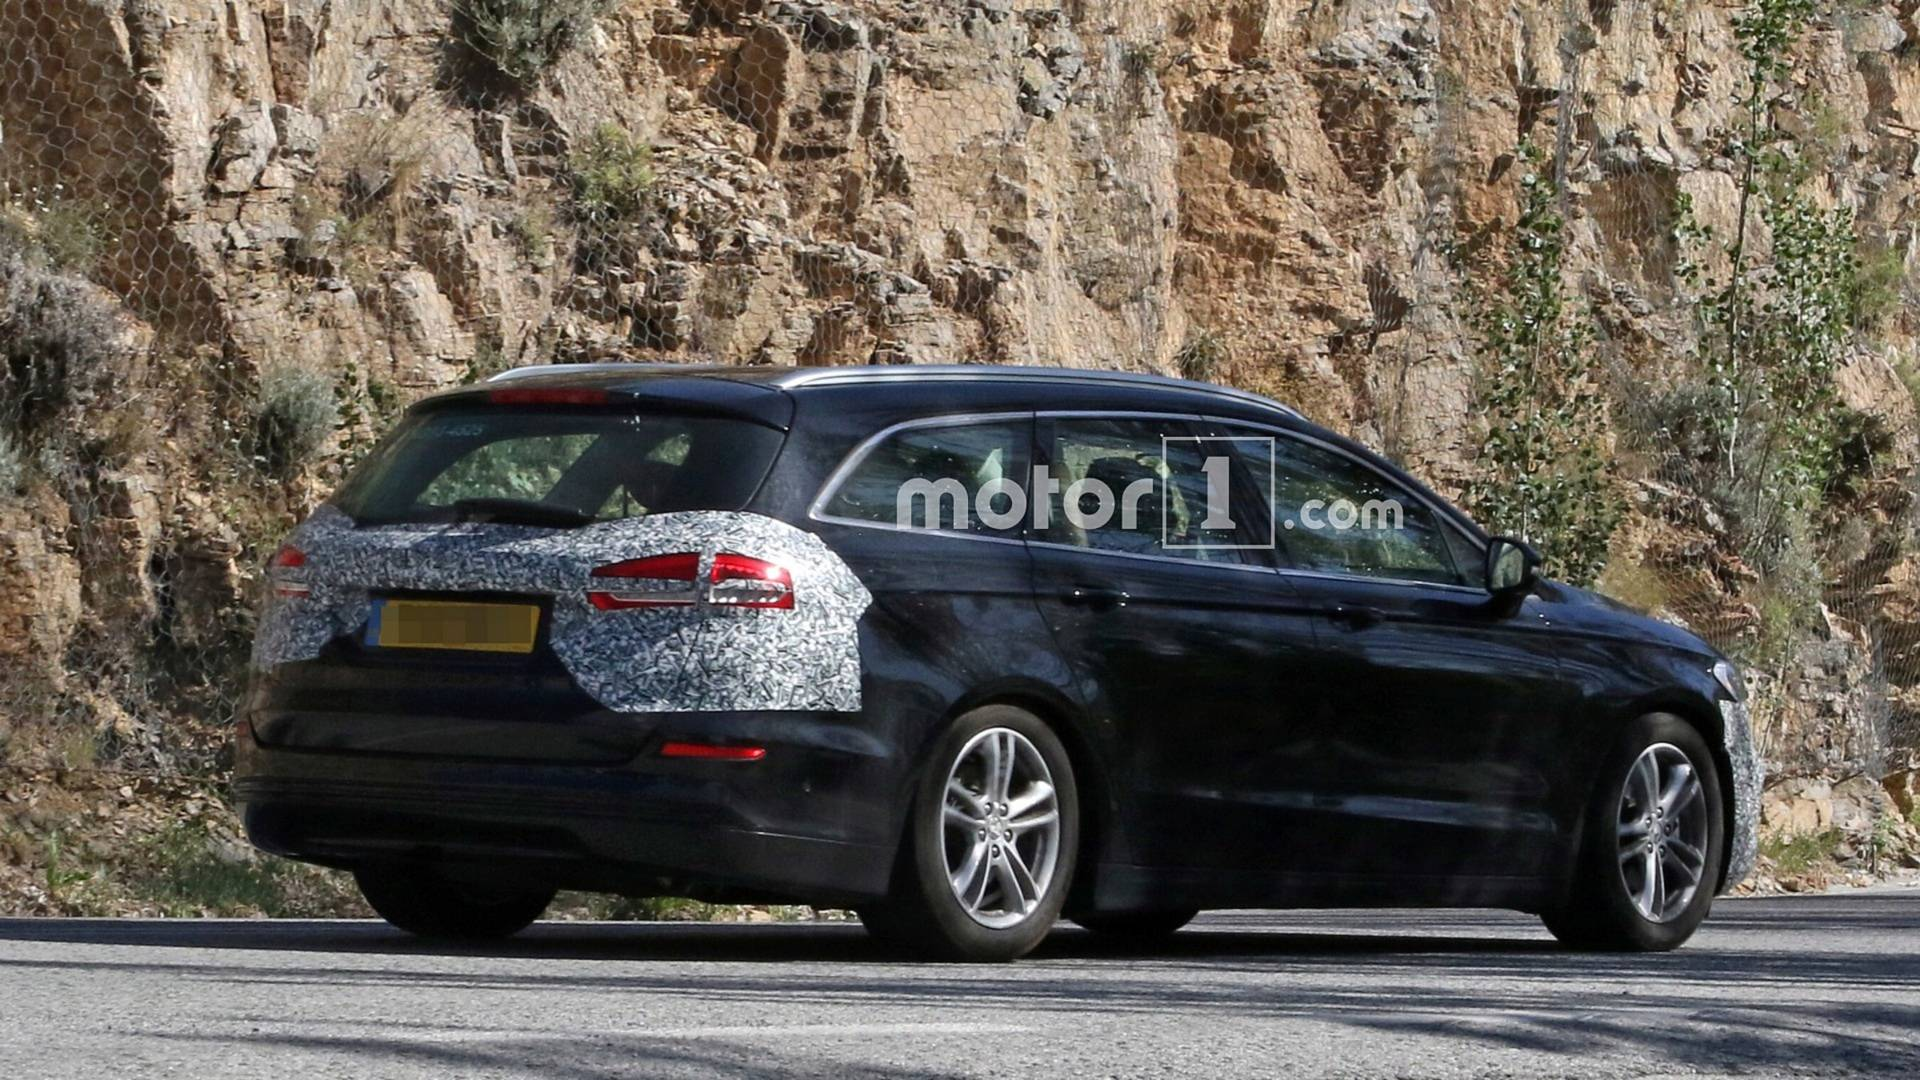 2018 - [Ford] Mondeo/Fusion V Ford-mondeo-wagon-facelift-spy-photo